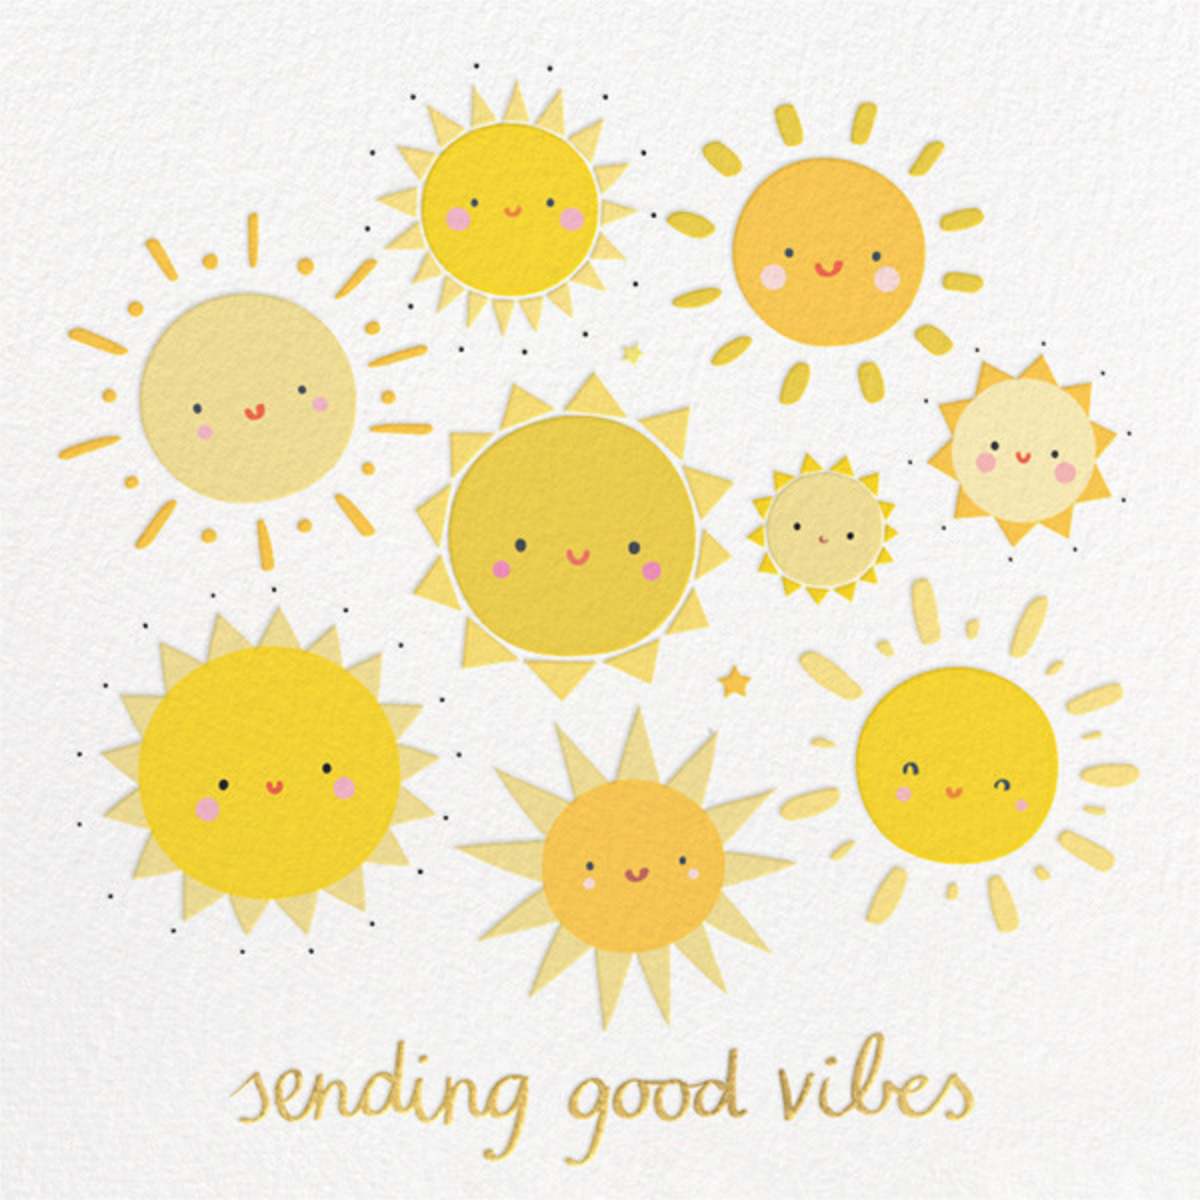 Smiling Suns - Little Cube - Just because